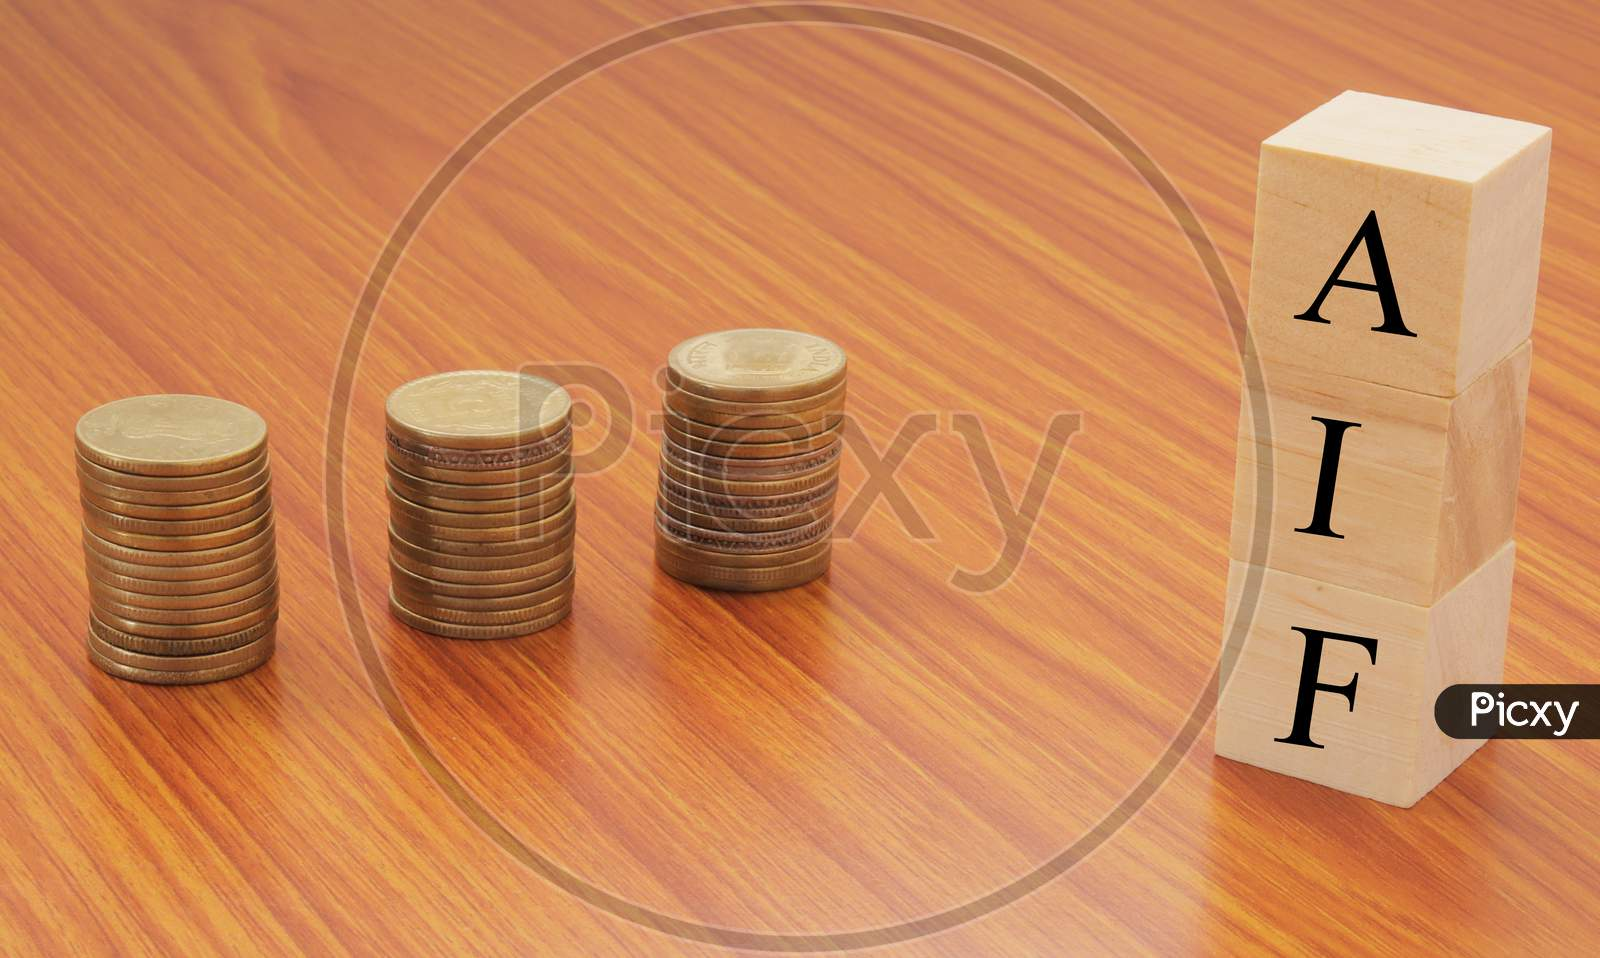 Alternative Investment Funds Or Aif On Wooden Block Letters With Stack Of Currency Coins.